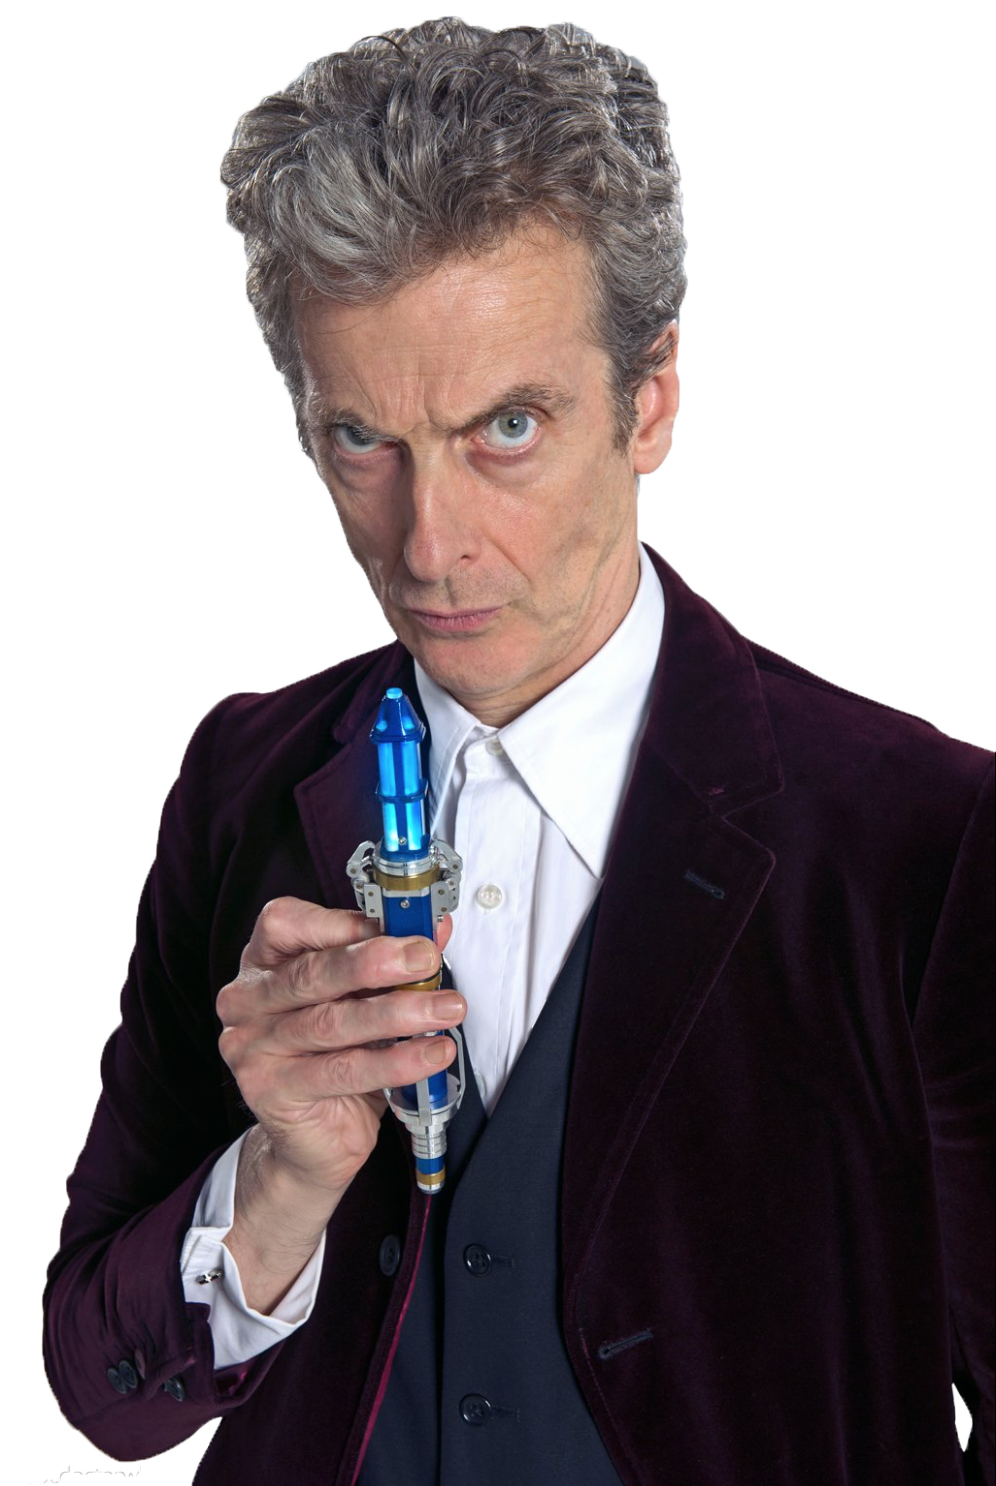 Twelfth doctor png. Pin by ric nichols